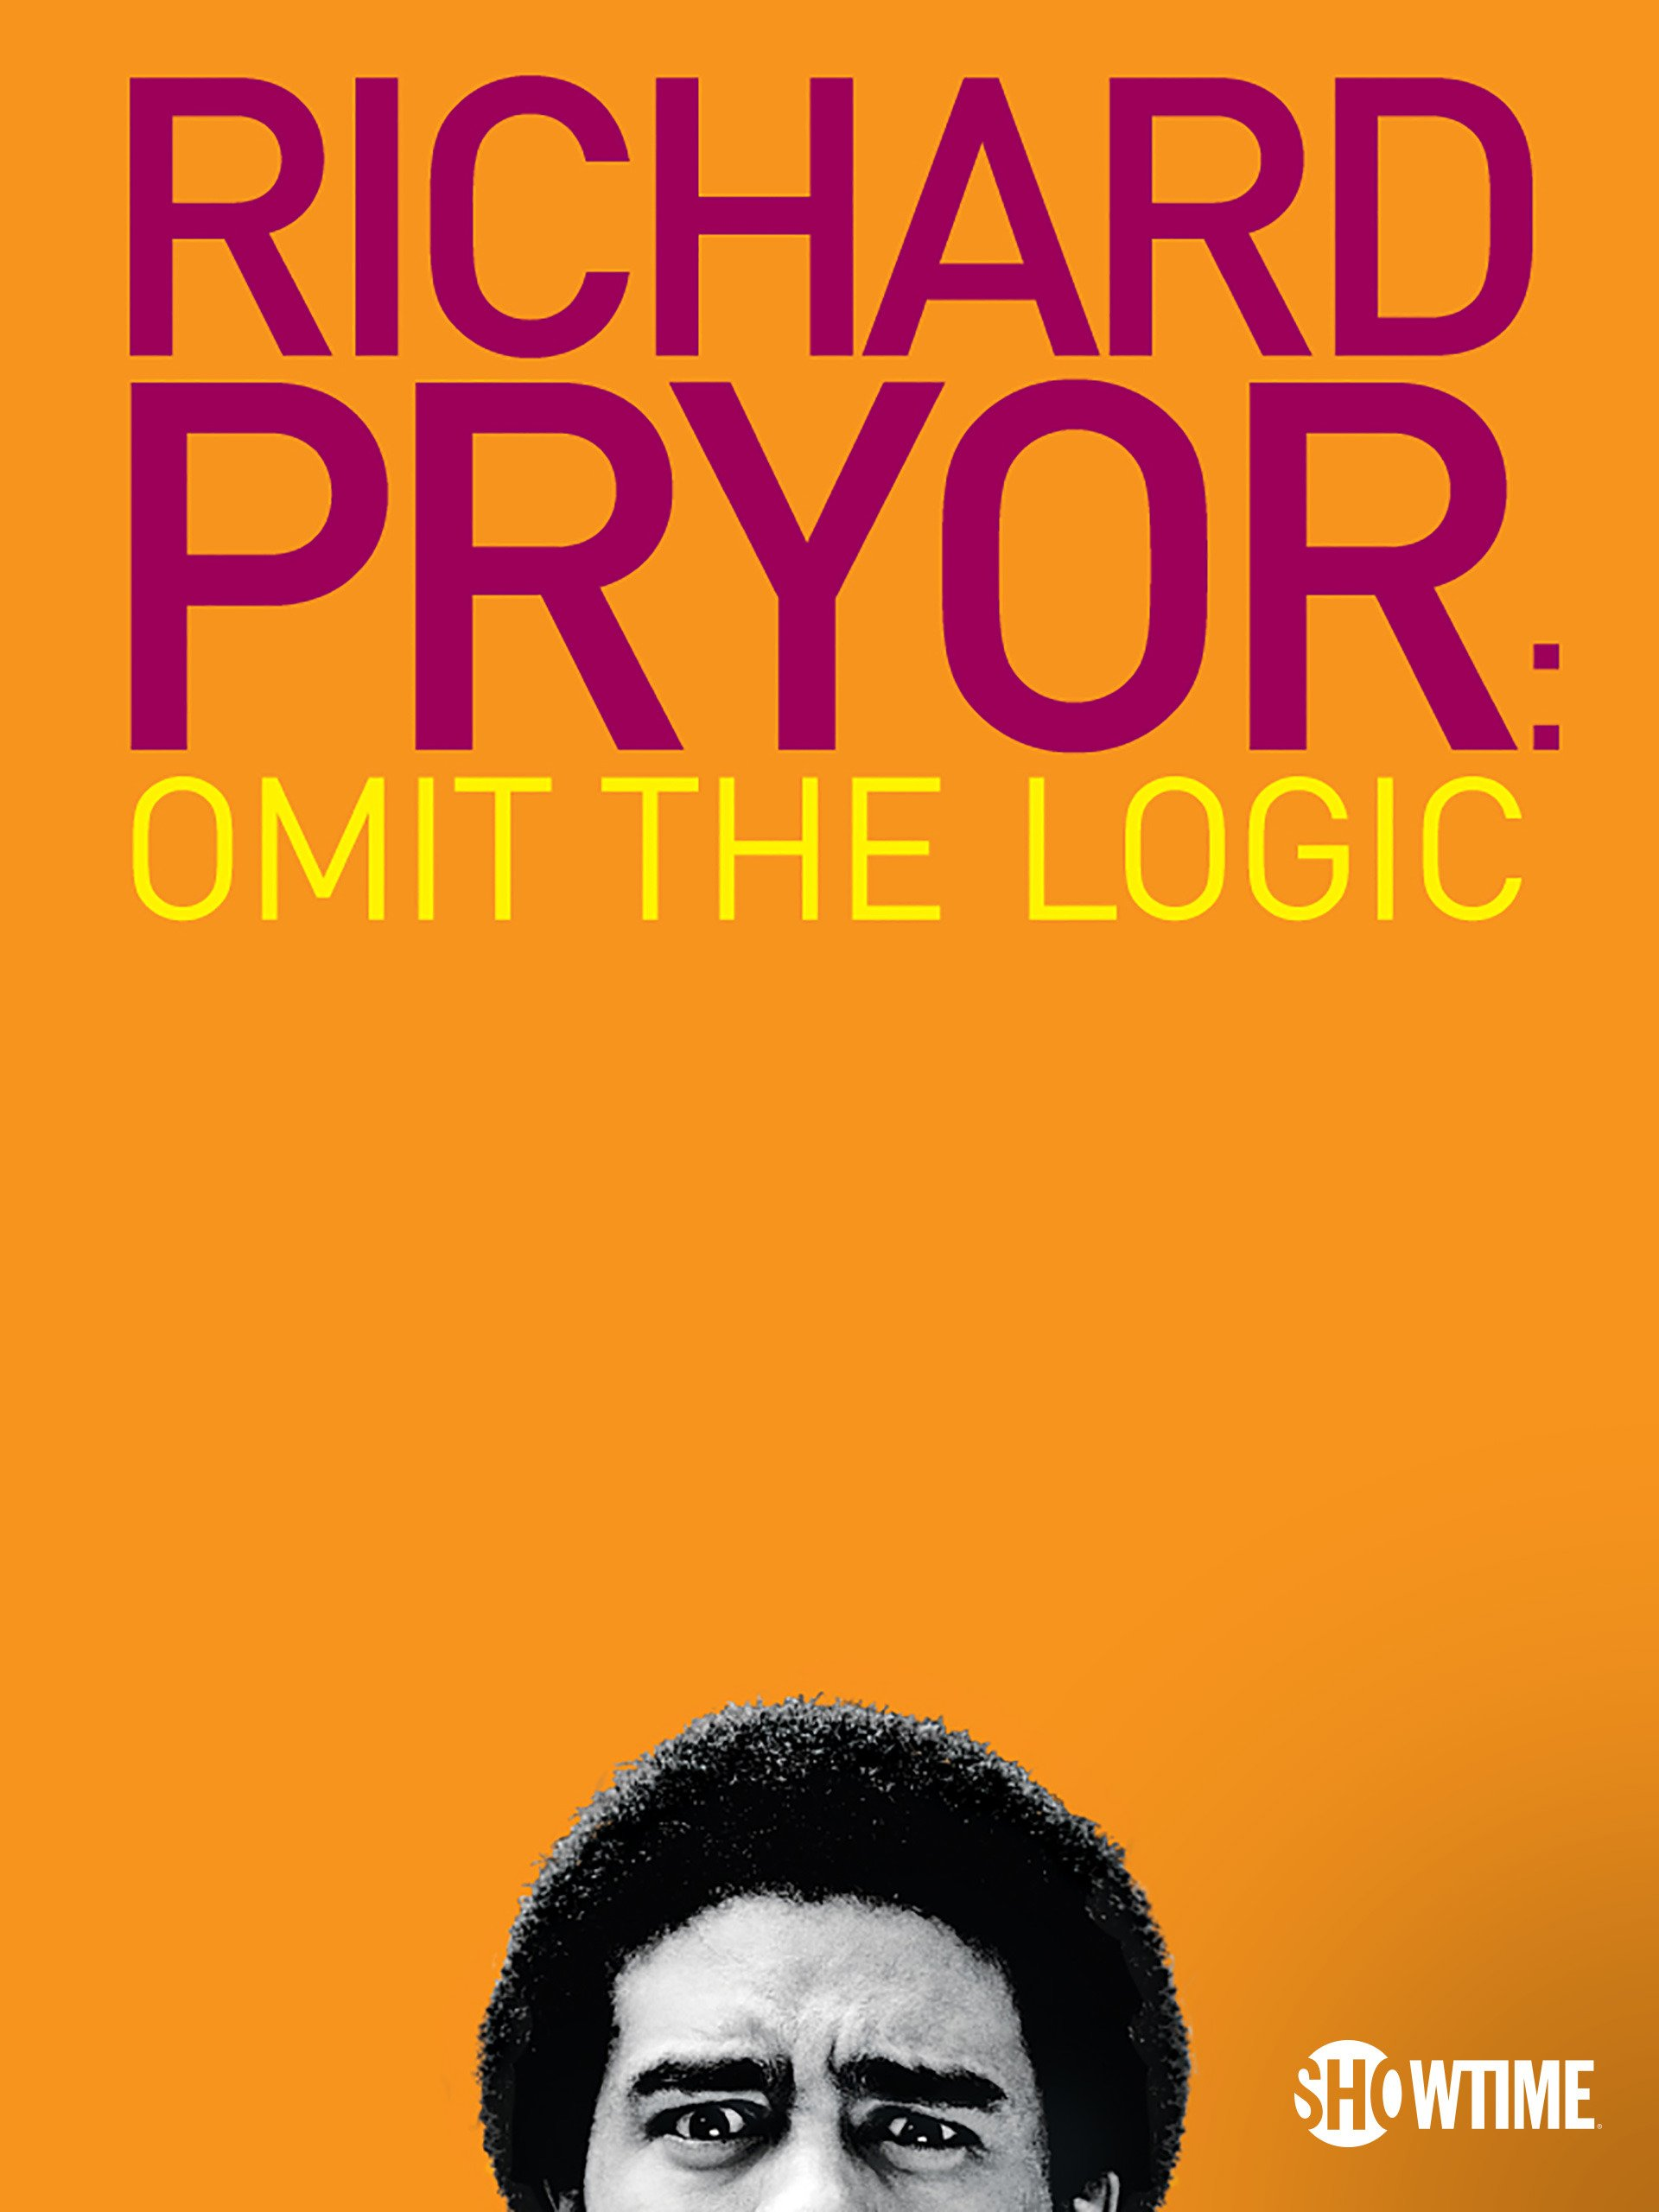 Amazon.com: Richard Pryor: Omit the Logic: Richard Pryor, Mike Epps, Whoopi Goldberg, Paul Mooney: Amazon Digital Services LLC